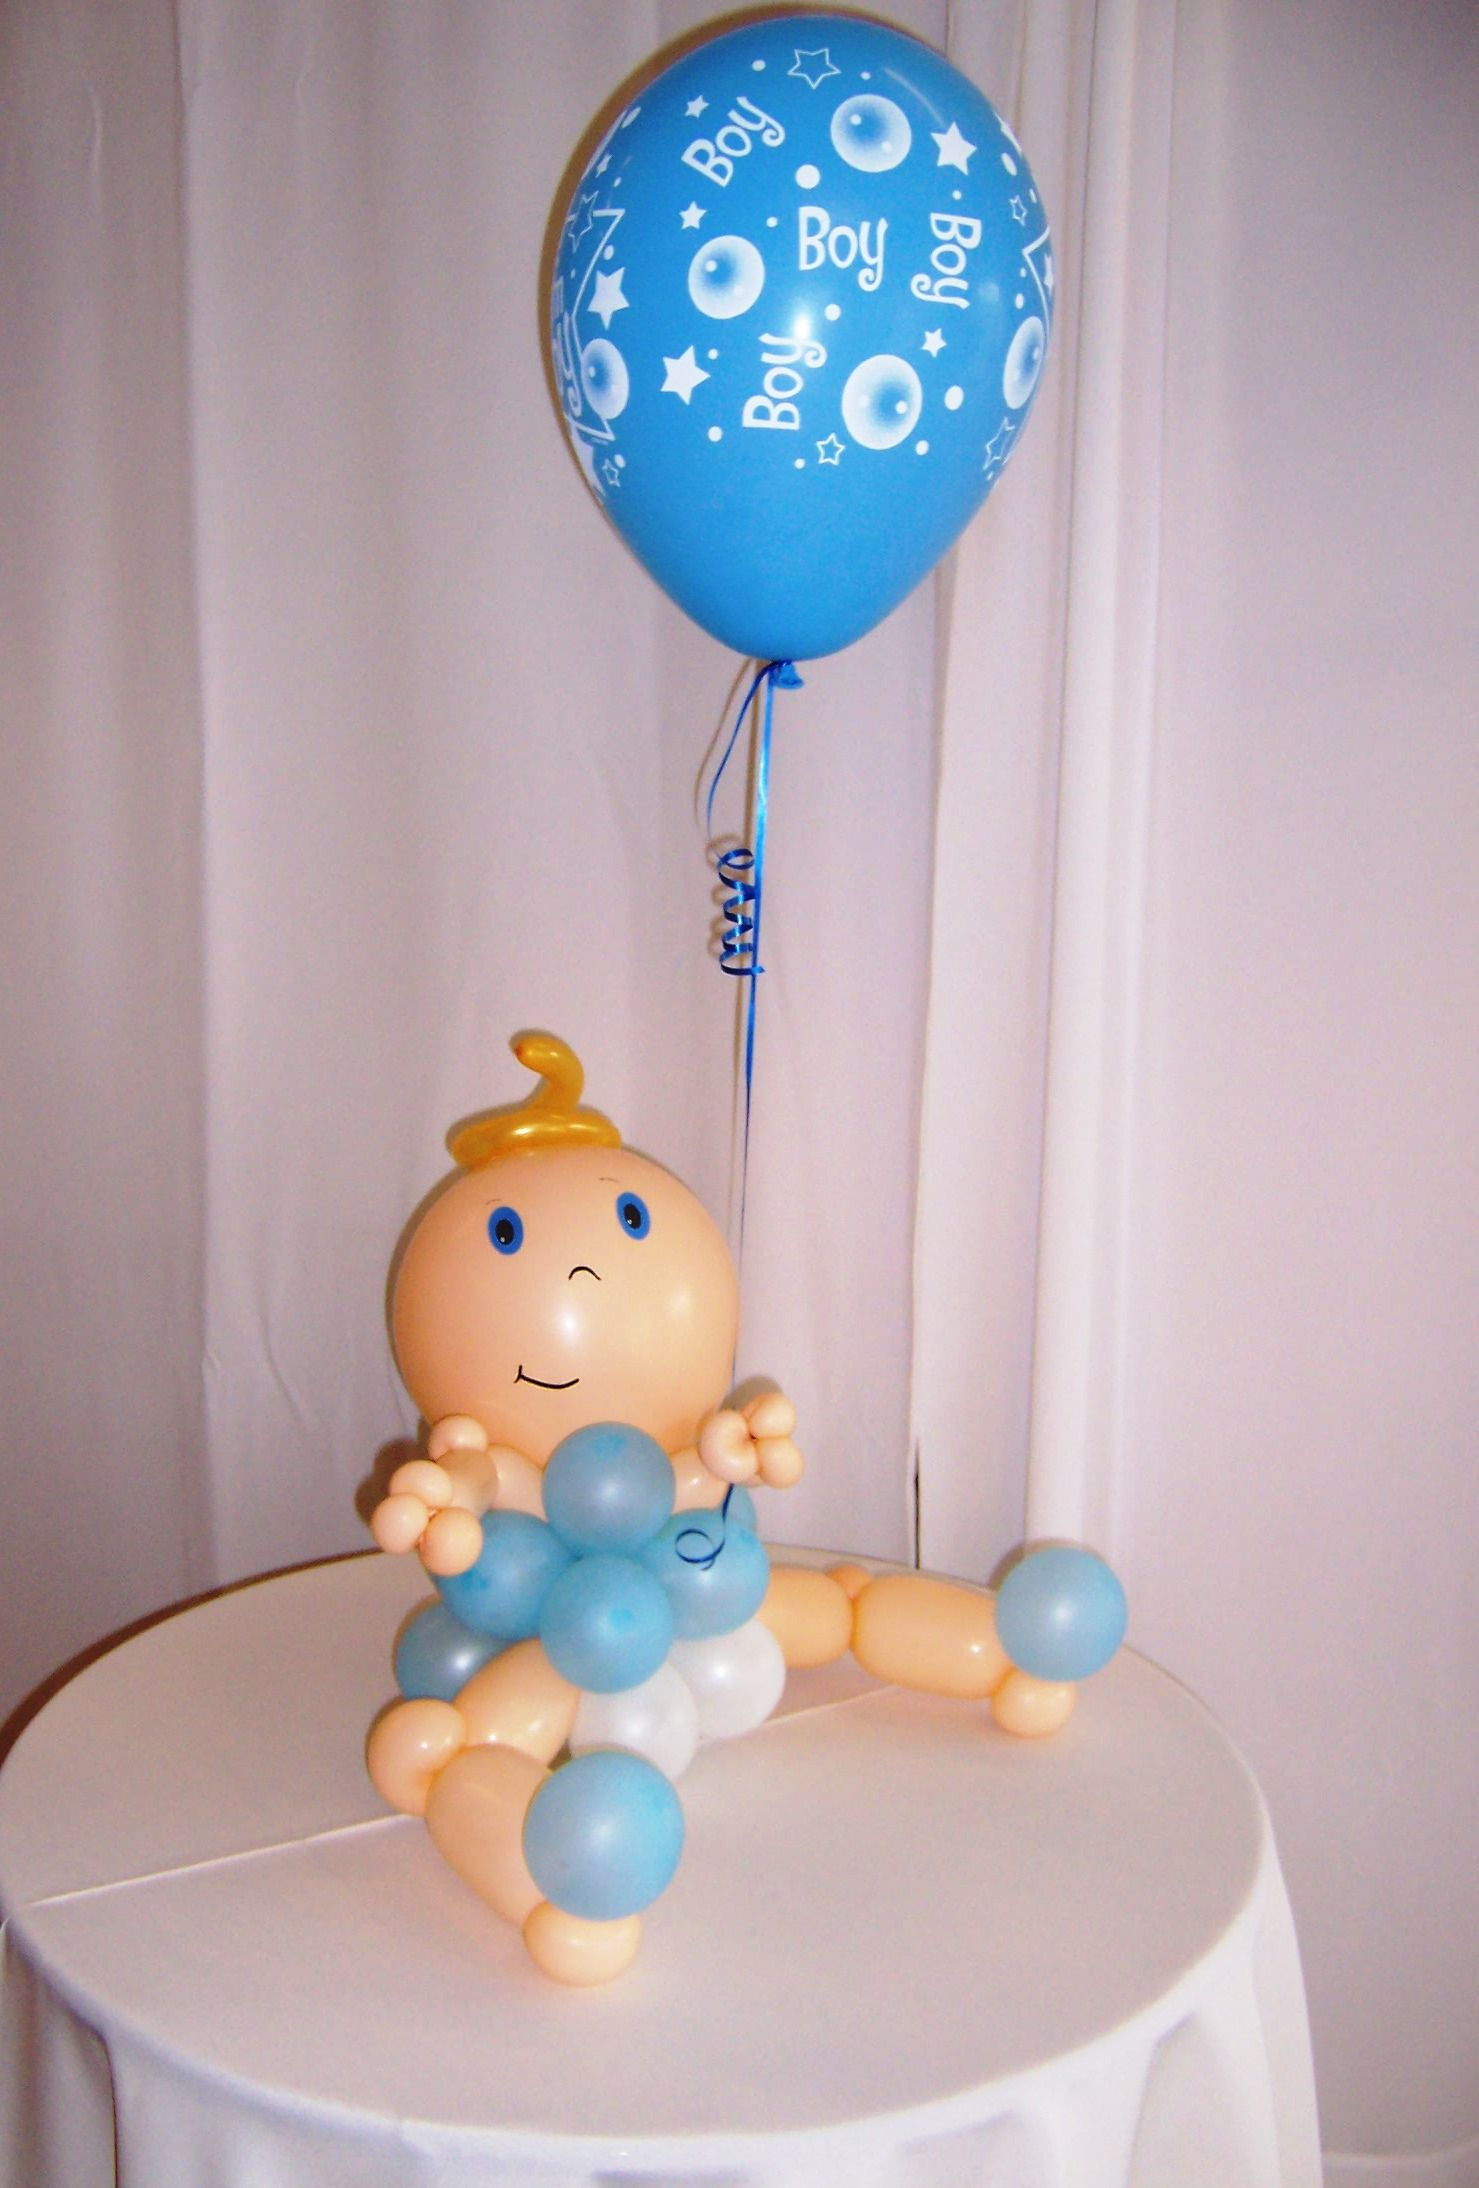 Balloon baby centerpieces cutie pie pacifier